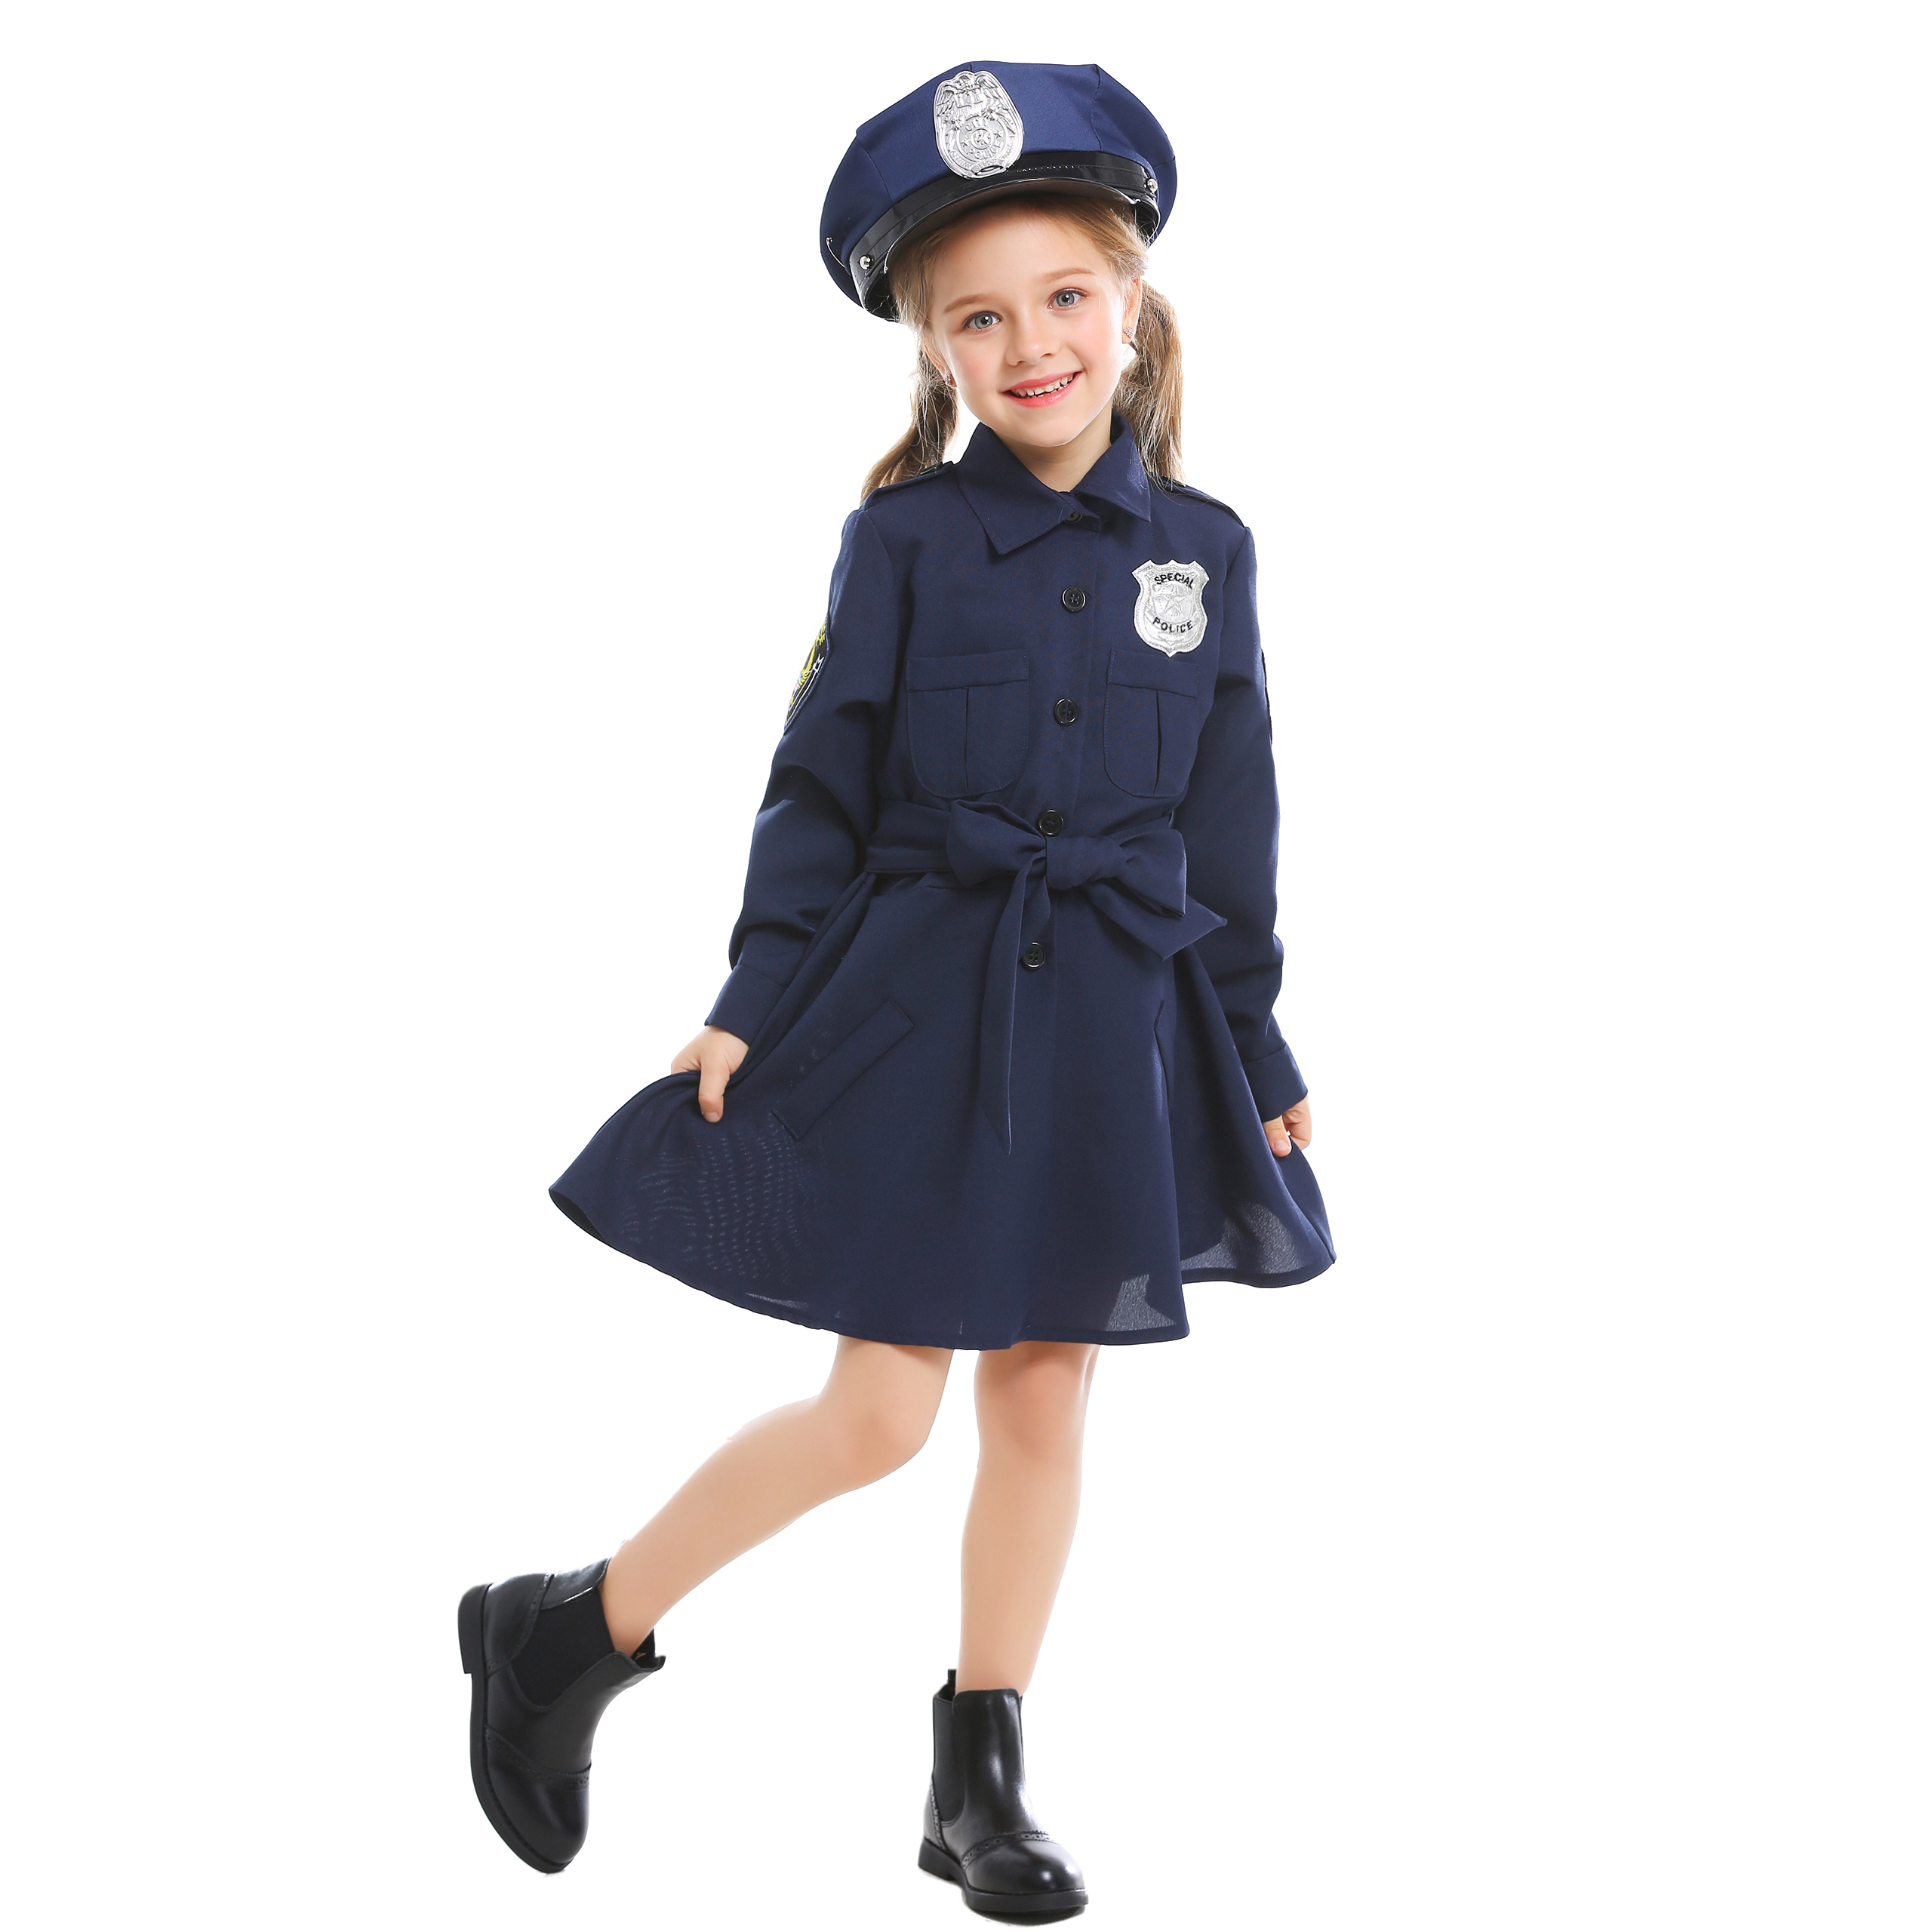 3PCs Girls Police Uniform Dress Classic Police Officer Cosplay Costume with Hat Belt